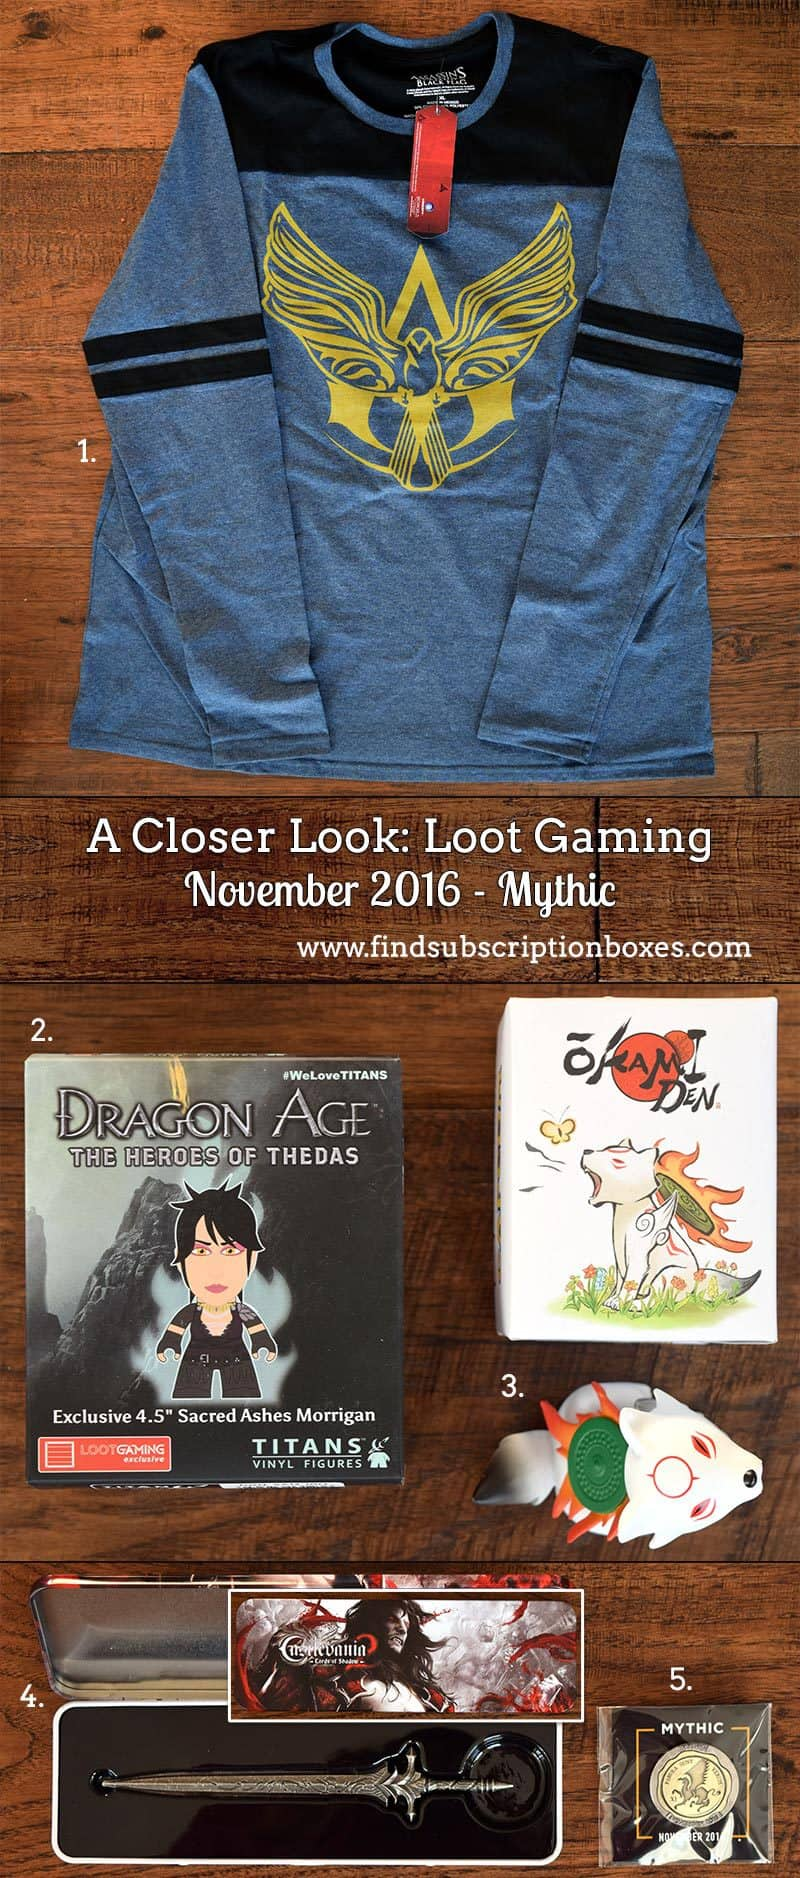 November 2016 Loot Gaming Review - Mythic - Inside the Box